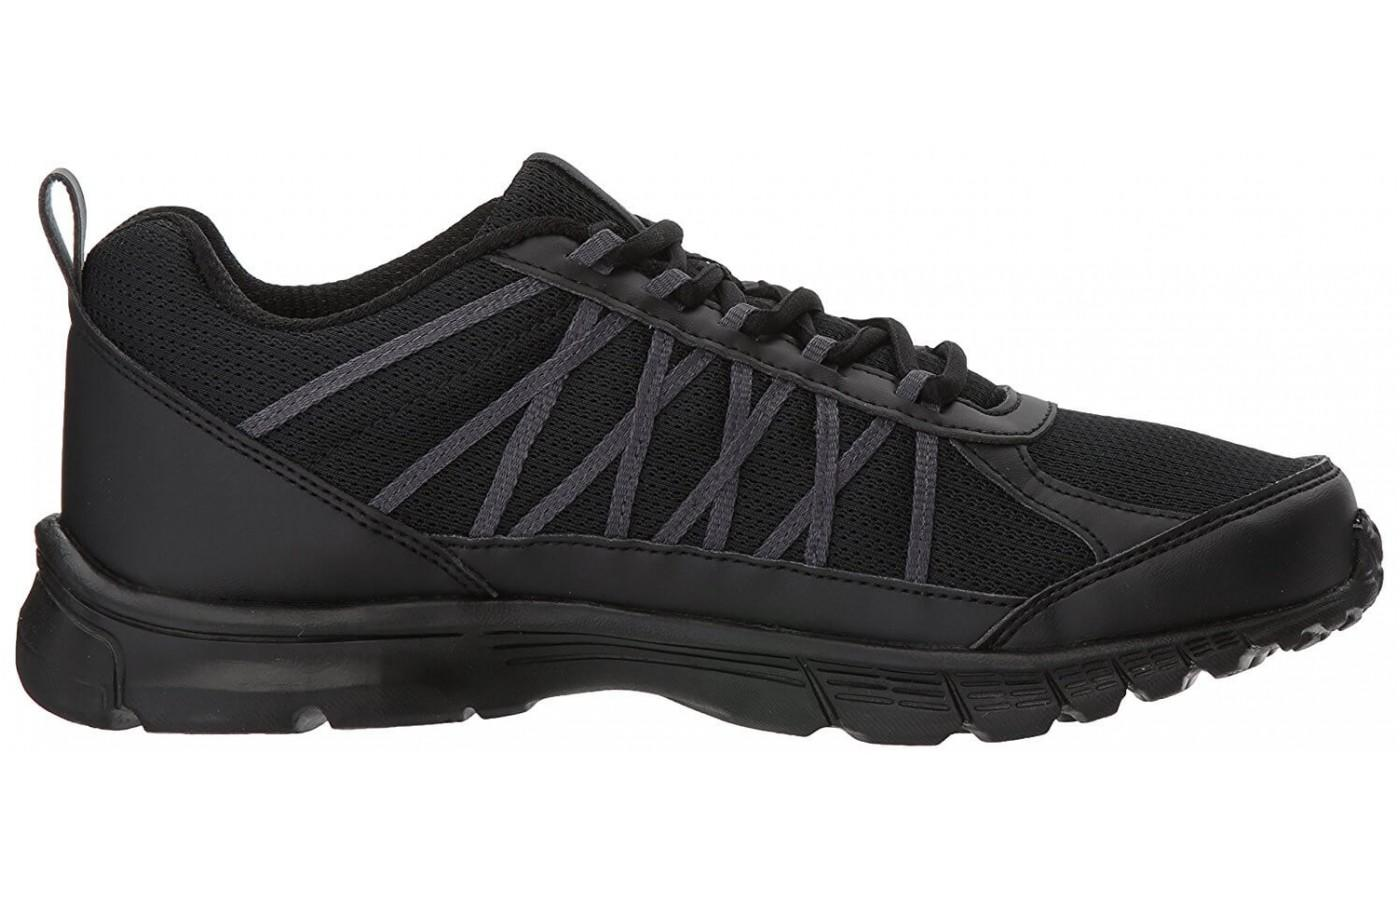 The midfoot webbing stabilizes and has visual appeal